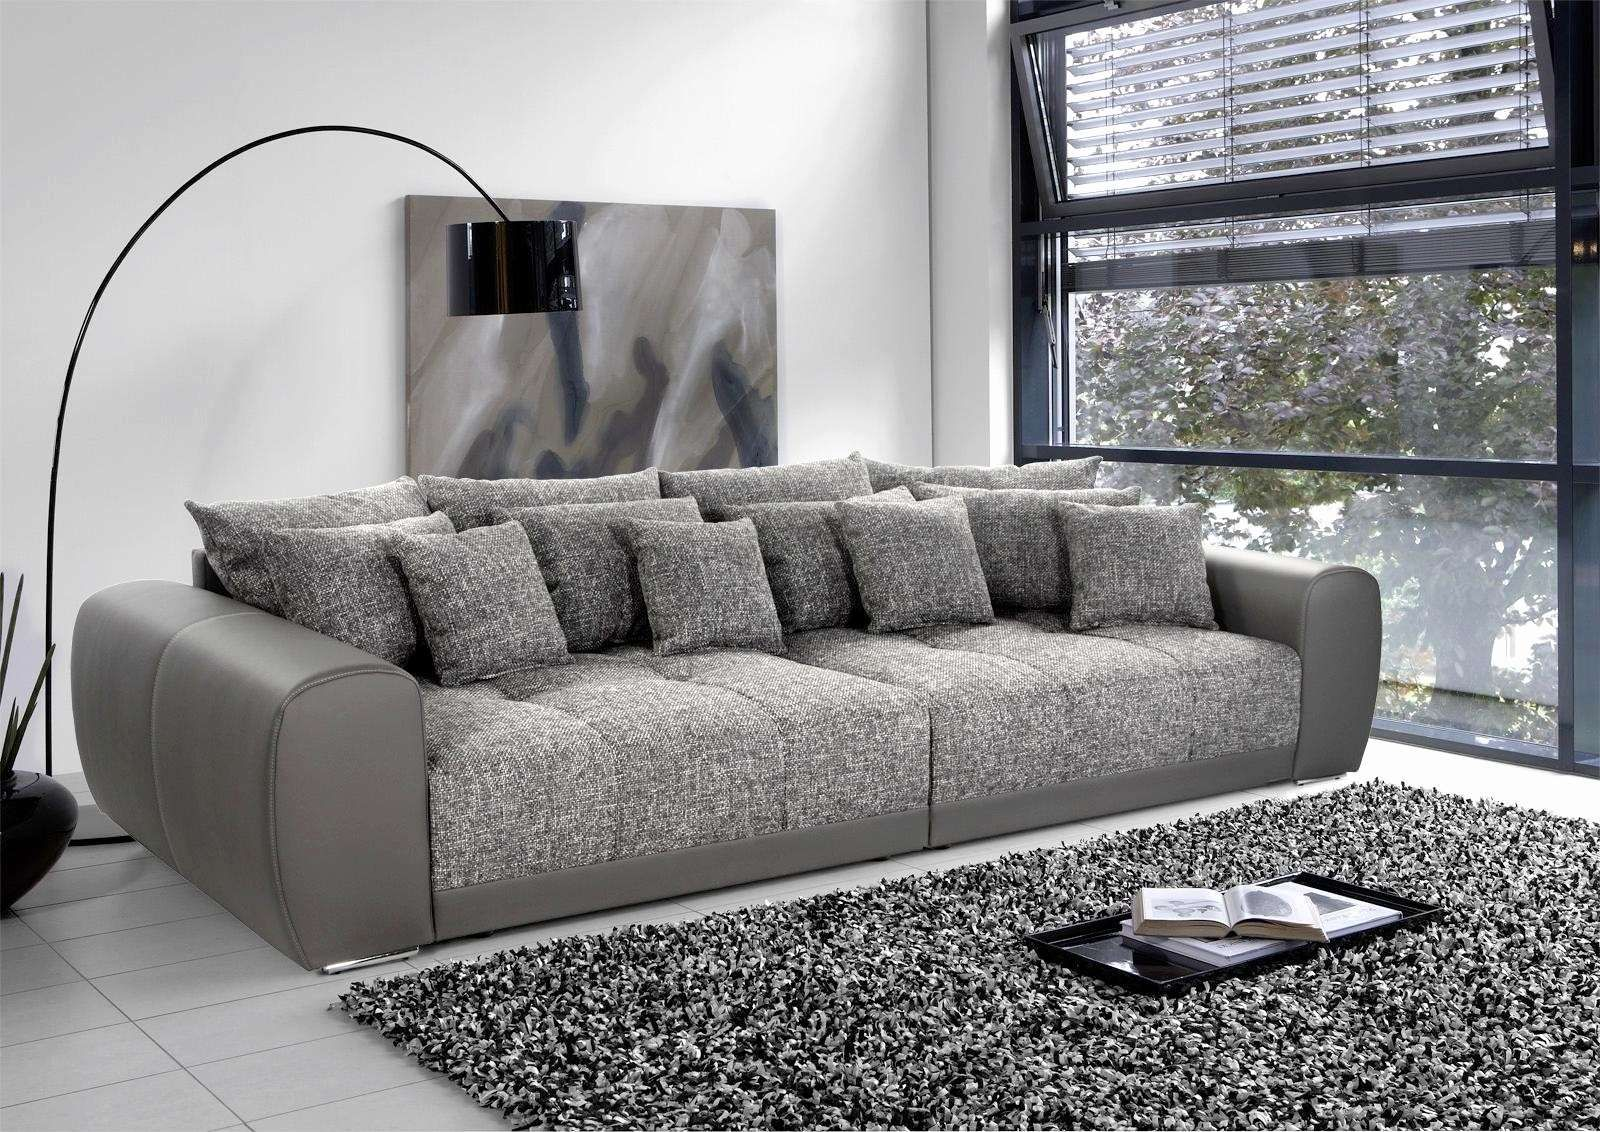 Big Sofa Lila Poco Big Sofa Ideen Poco Sofa Neu Sofa Stoff Reinigen Neu Lila Couch Big Sofas White Sofa Living Room Sofa Home